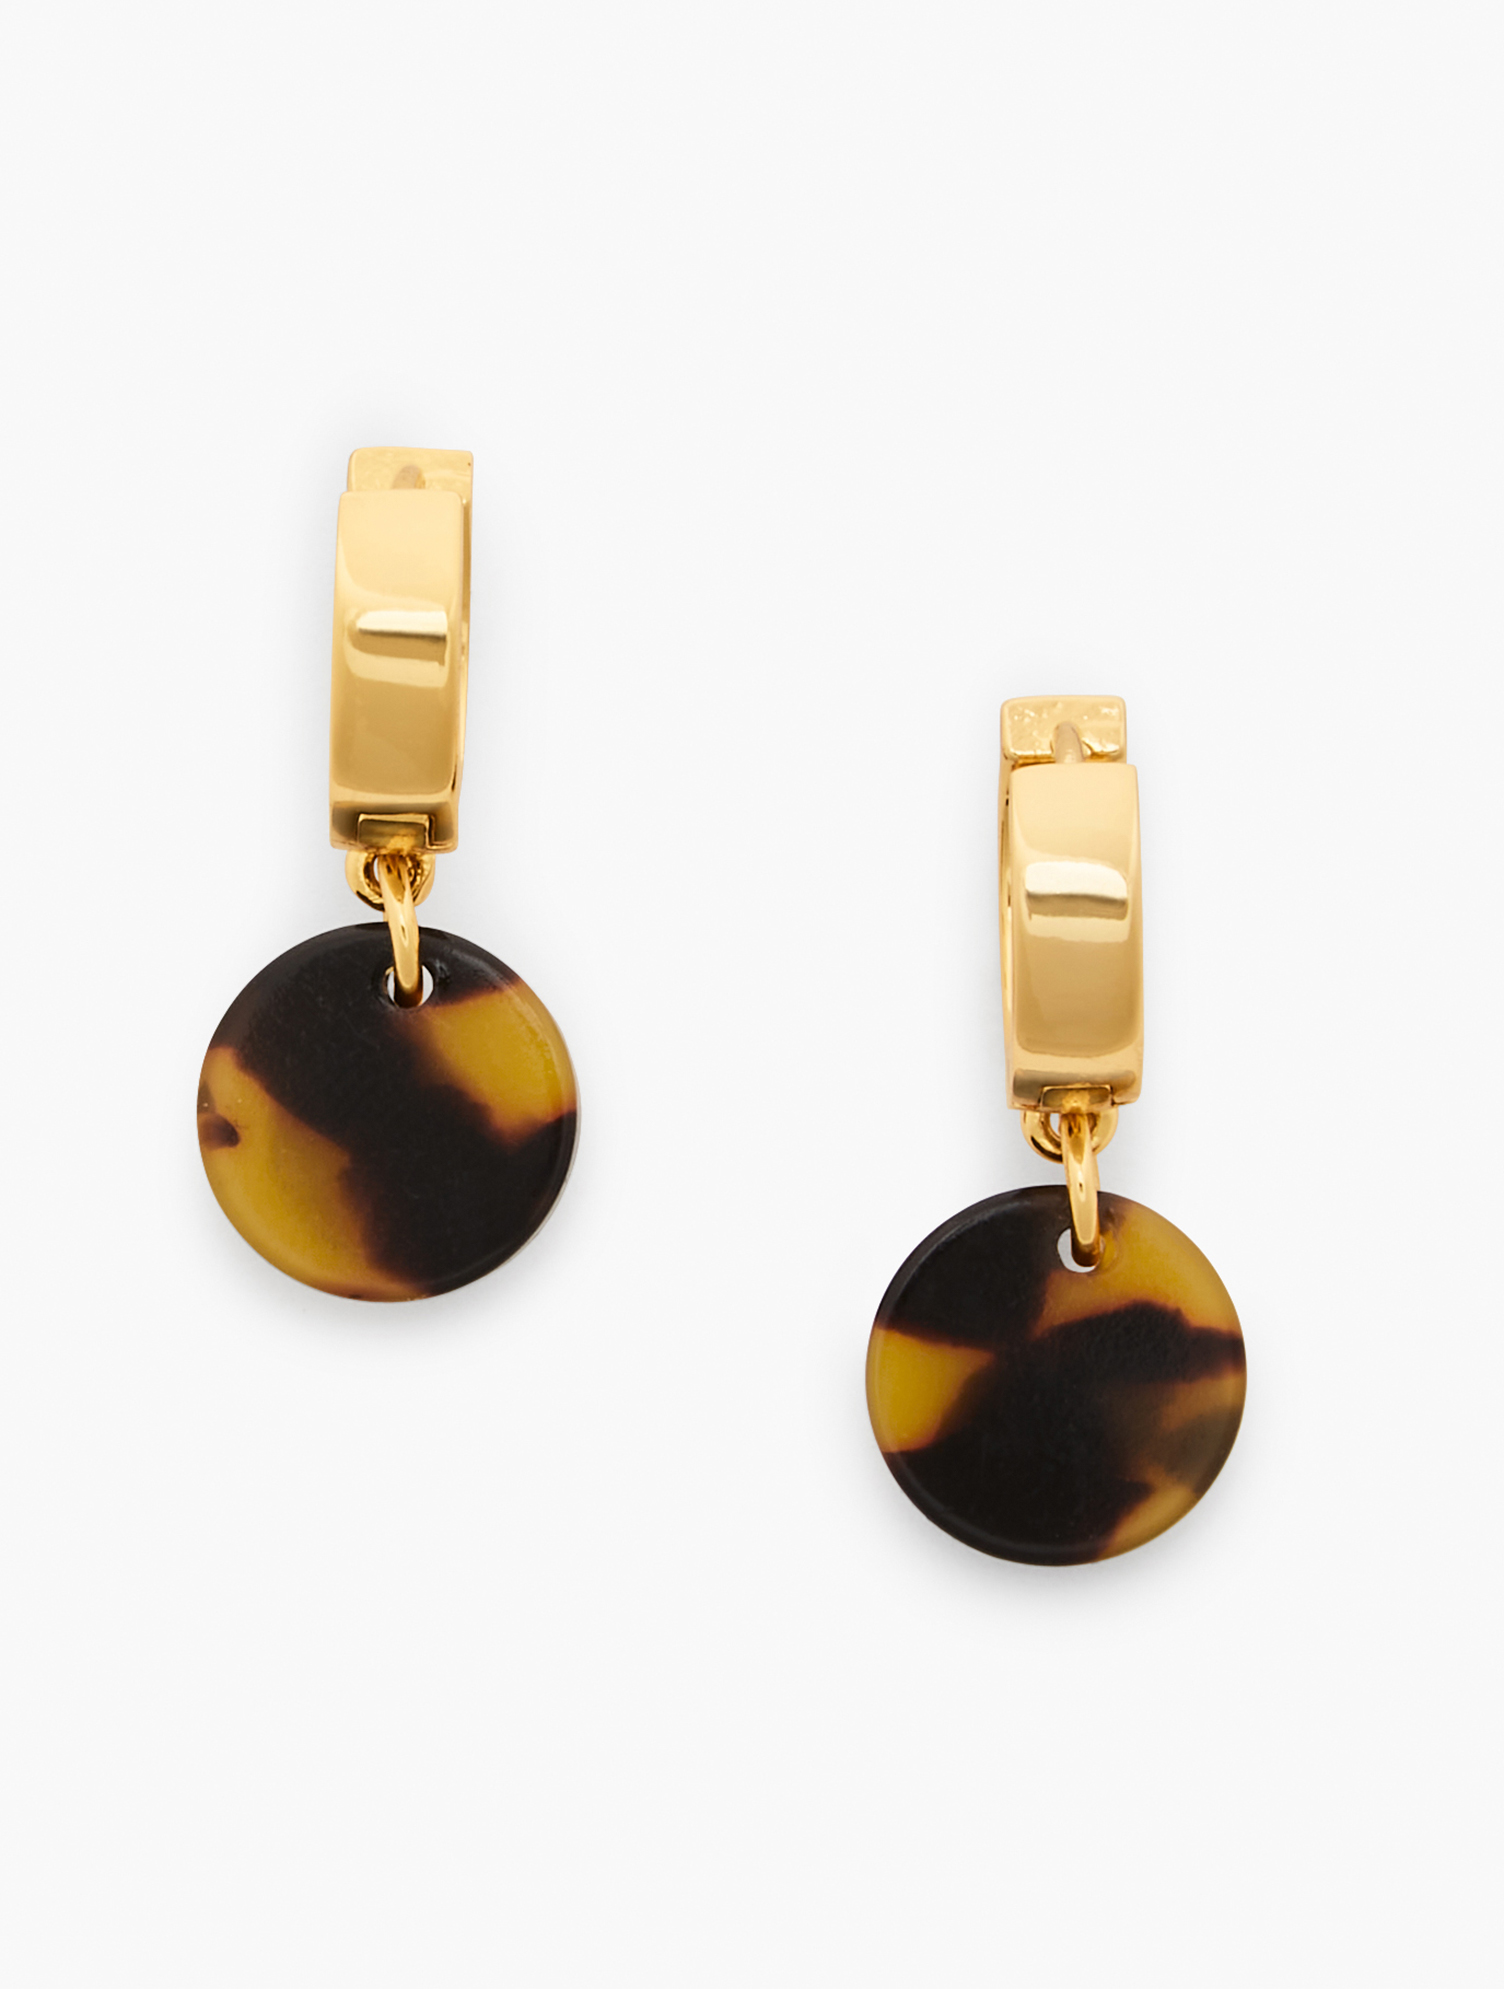 Our Tortoise Disk earrings. Pair with our Tortoise Link Statement Necklace. Features Clasp: Post Imported Fit: 1 1/2 inches Material: 65% Brass, 34% Acetate, 1% CZ Tortoise Disk Earrings - Tortoise/Gold - 001 Talbots